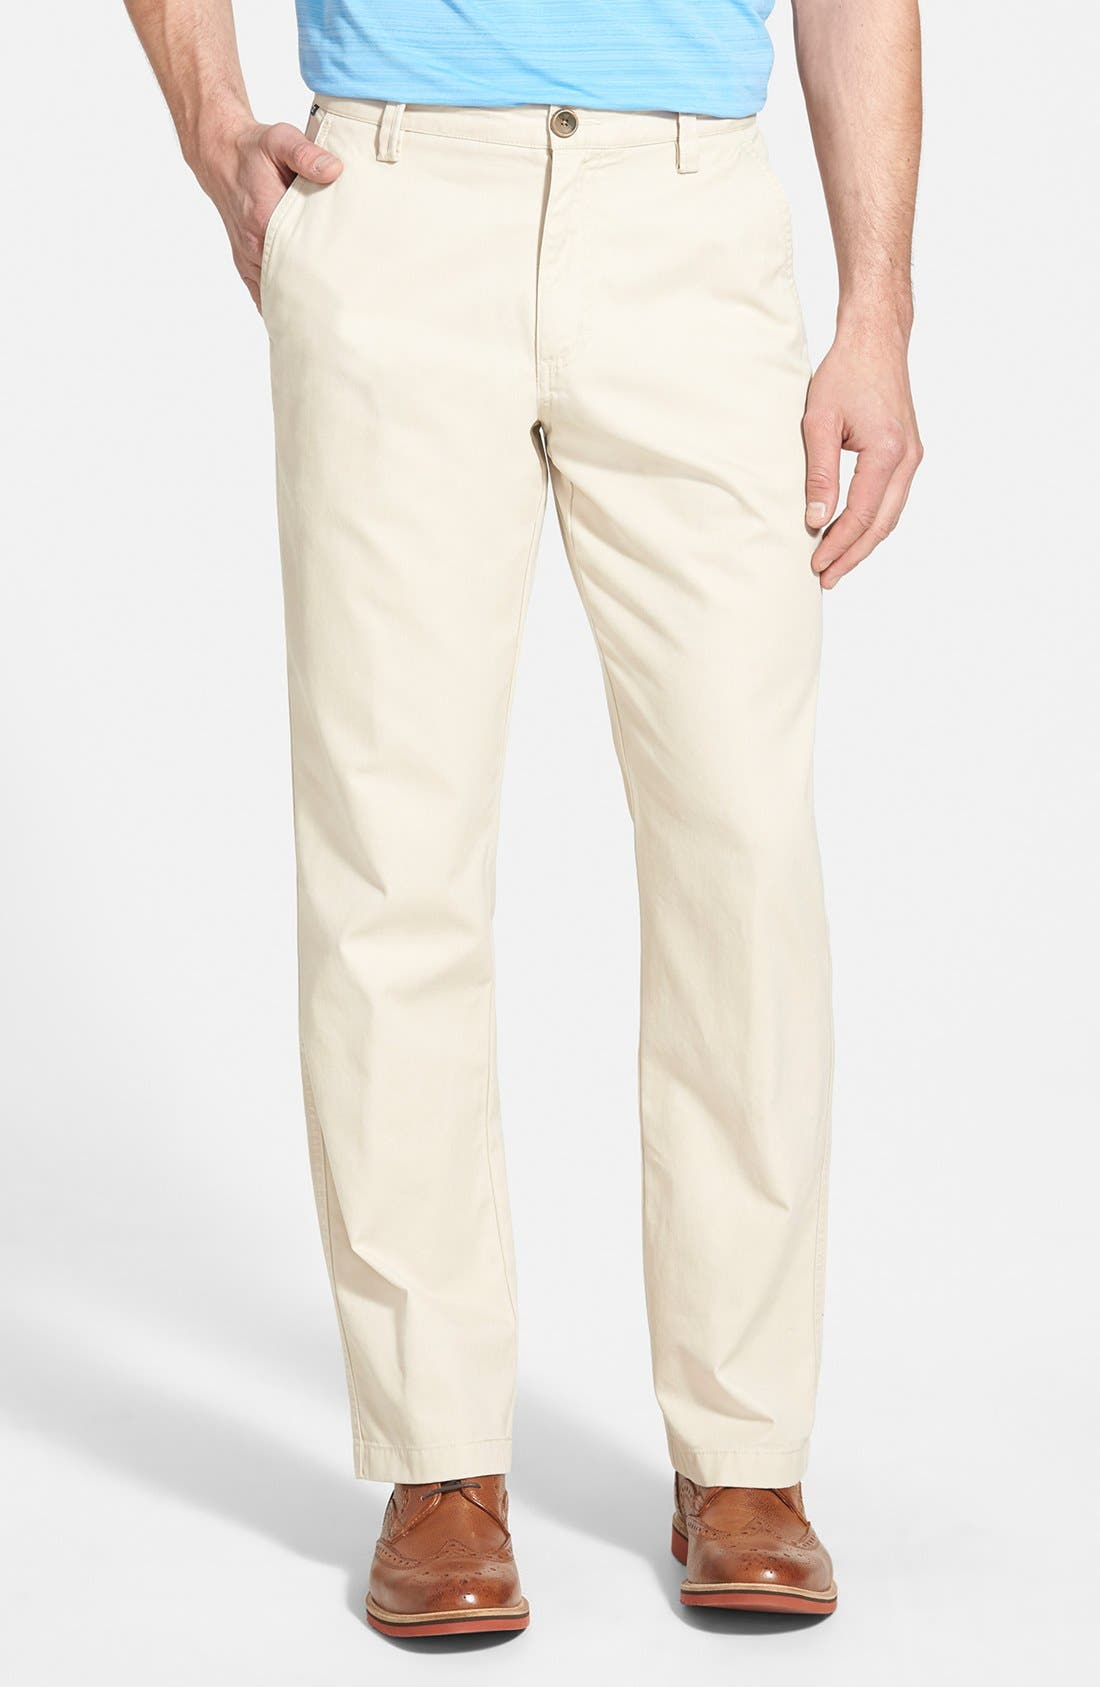 'Beckett' Straight Leg Washed Cotton Pants,                             Main thumbnail 1, color,                             SAND